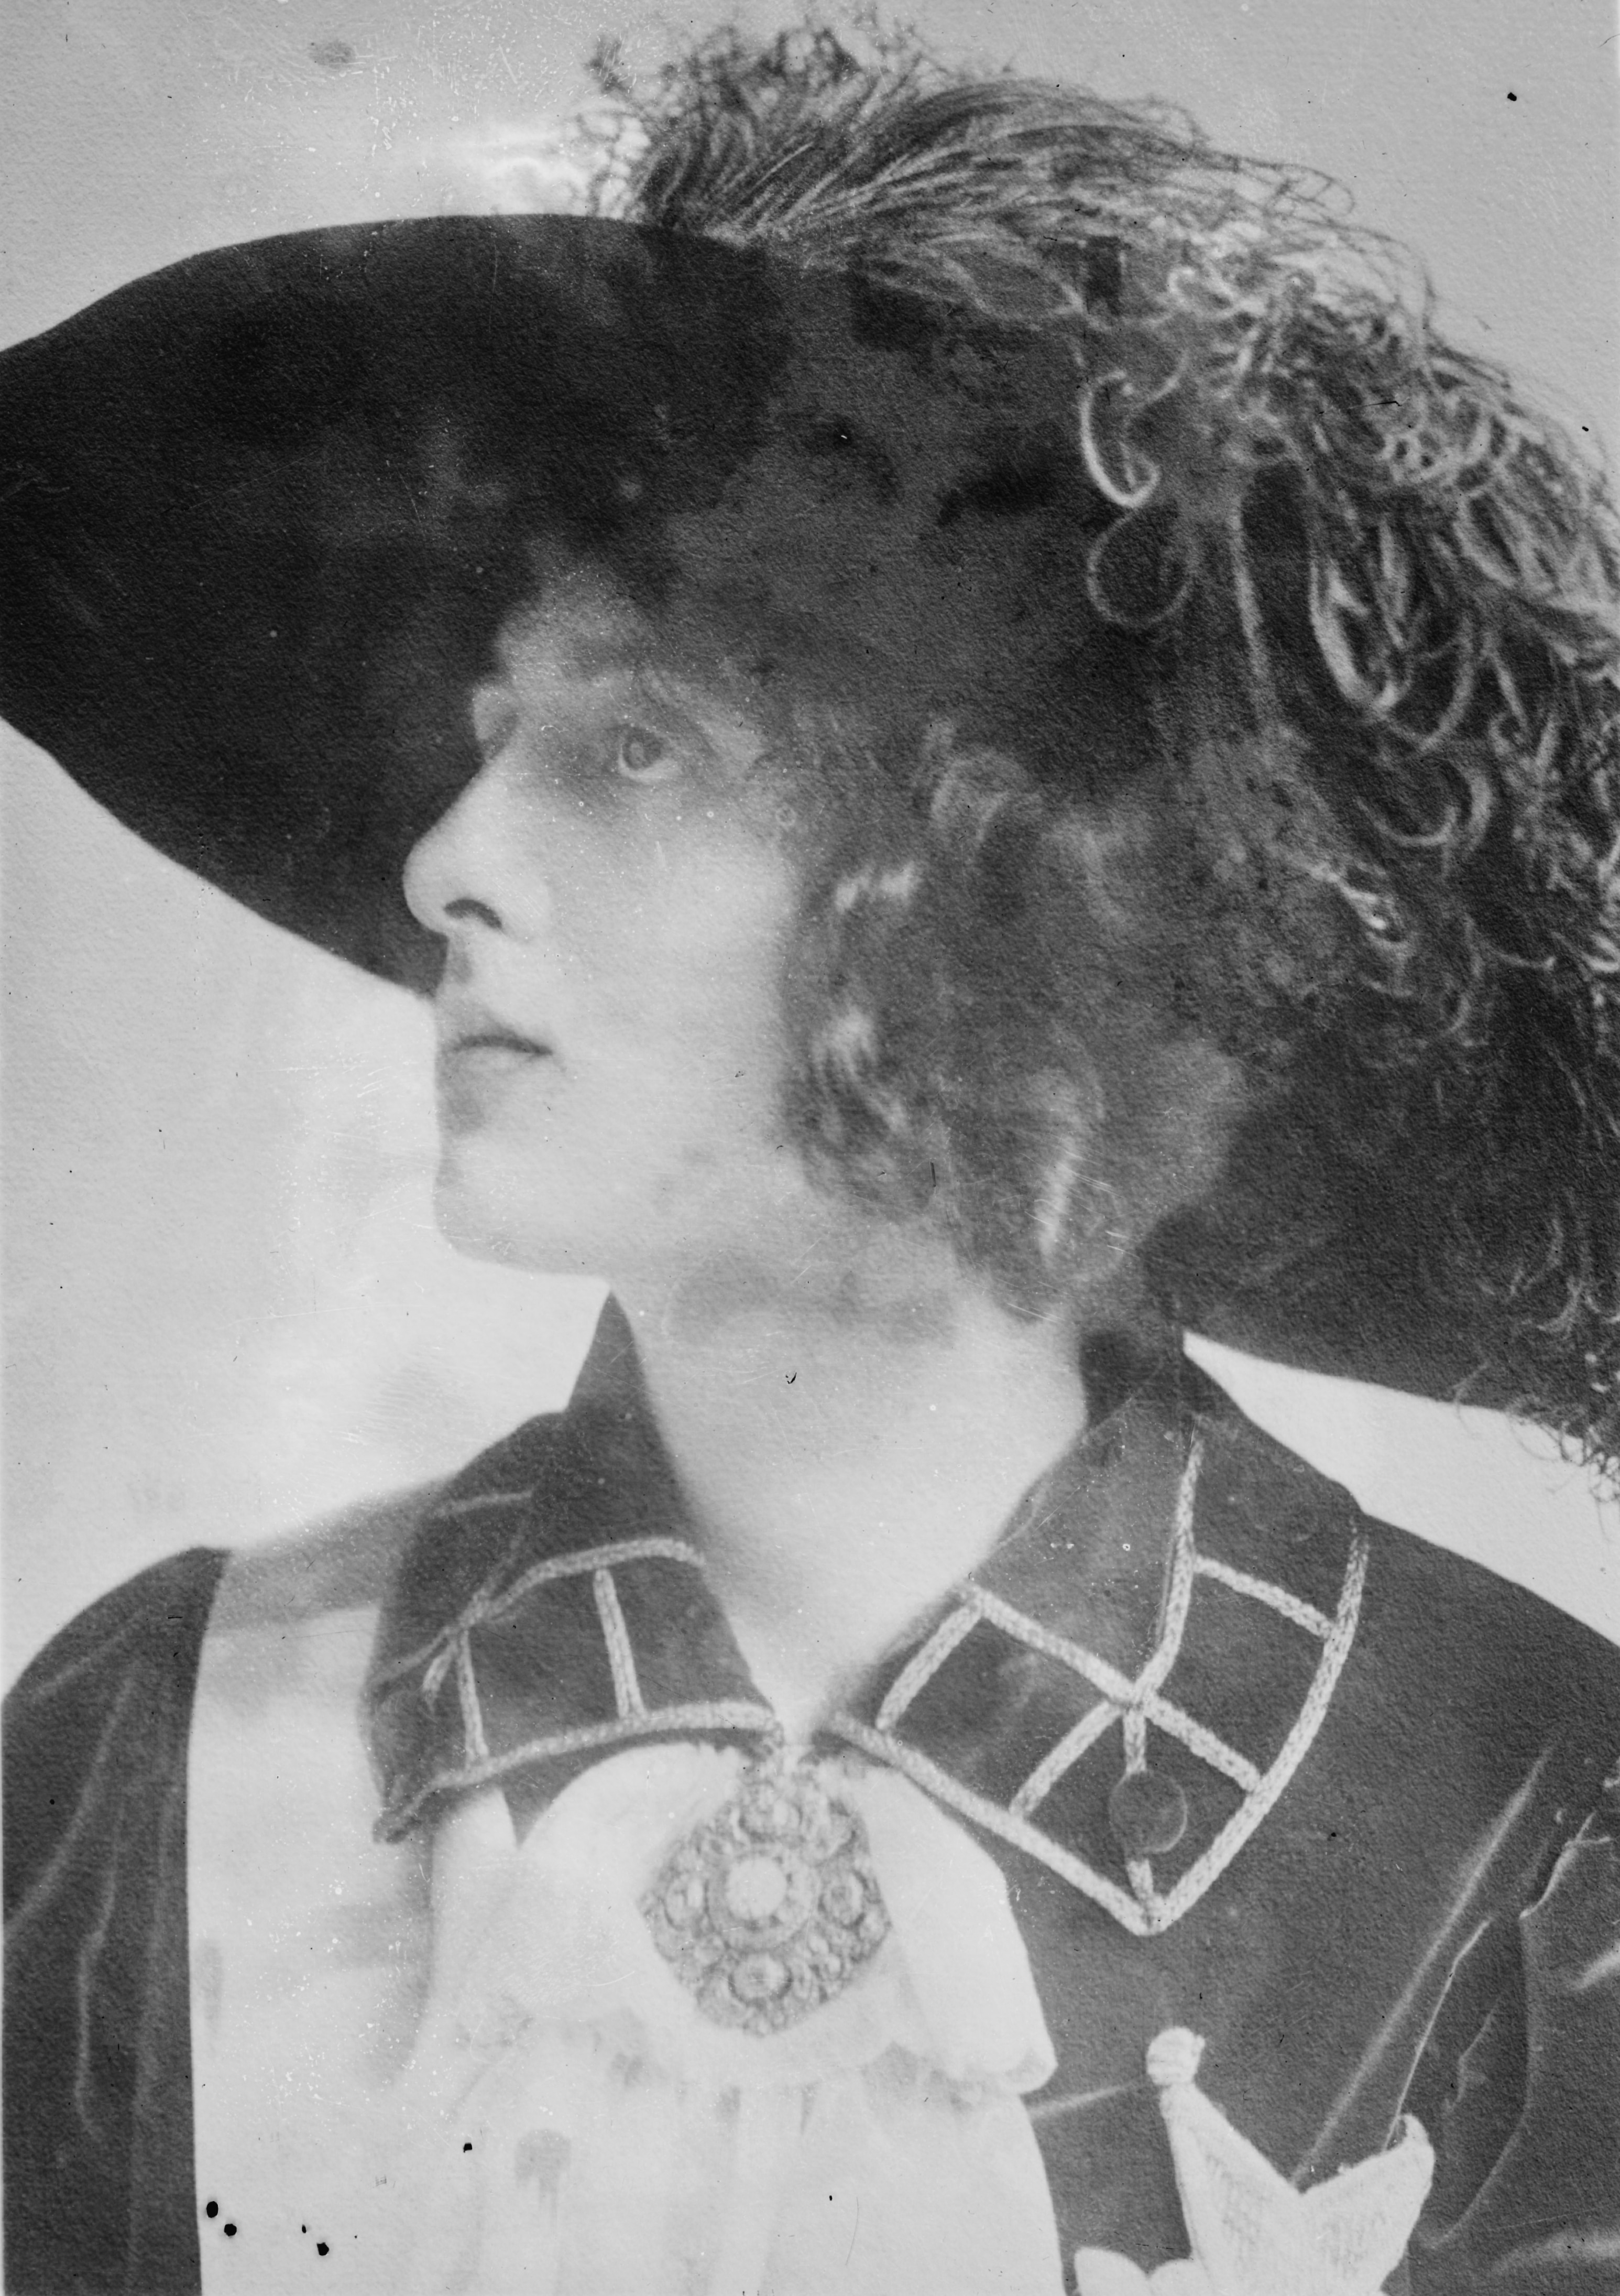 Image of Vita Sackville-West from Wikidata